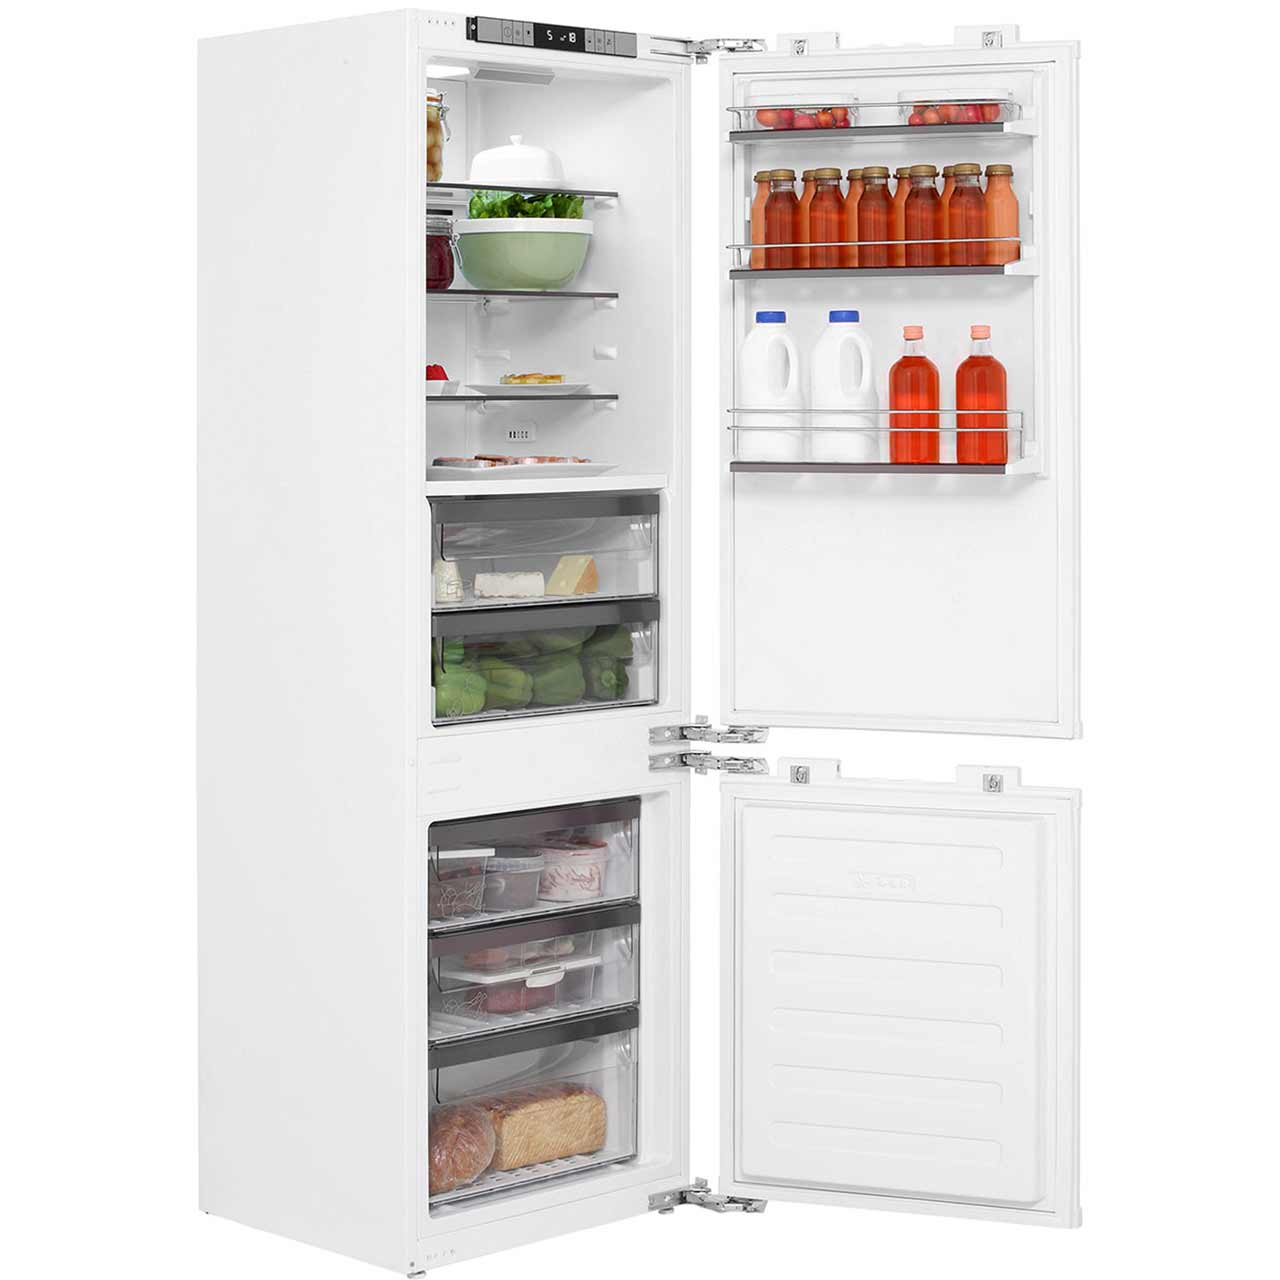 Leisure Patricia Urquiola PBC273F Integrated Fridge Freezer Frost Free in White